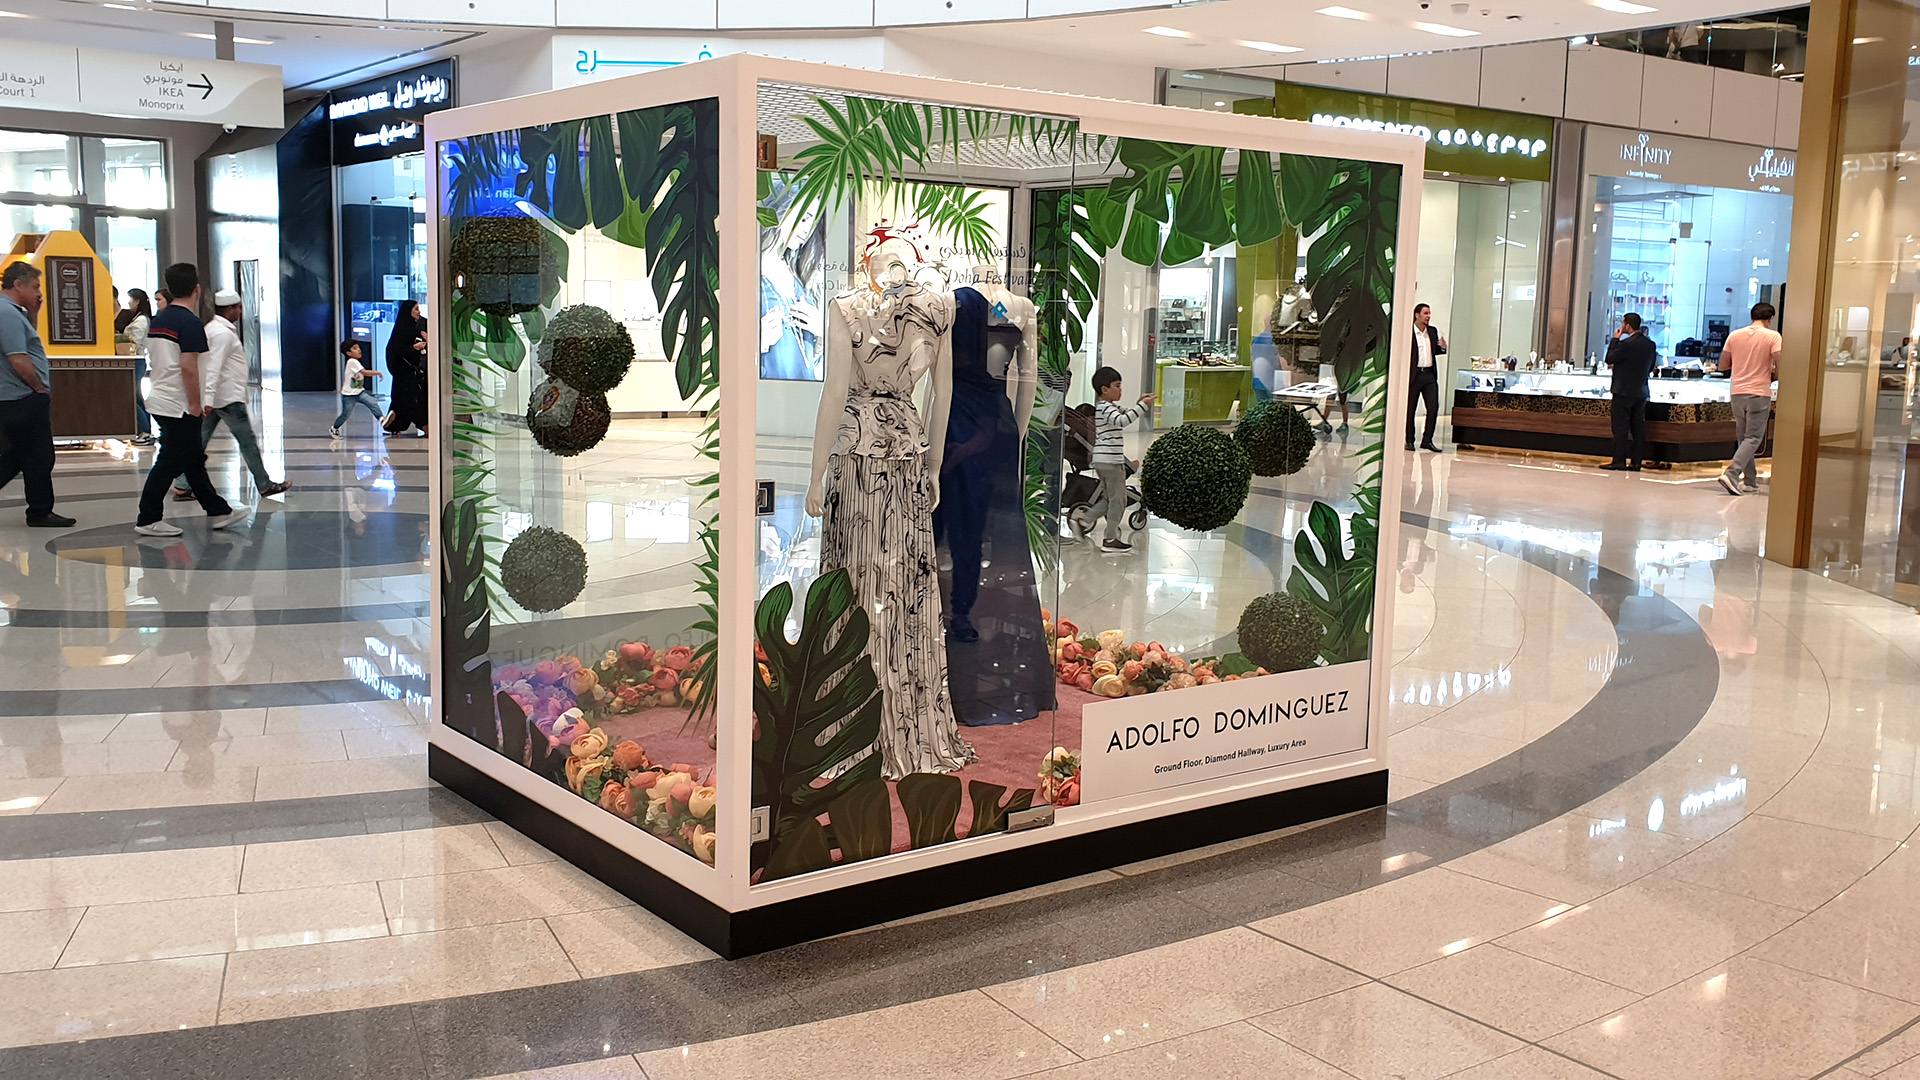 Custom fabricated Window Display Boxes for Doha Festival City made from Steel and Glass by ME Visual